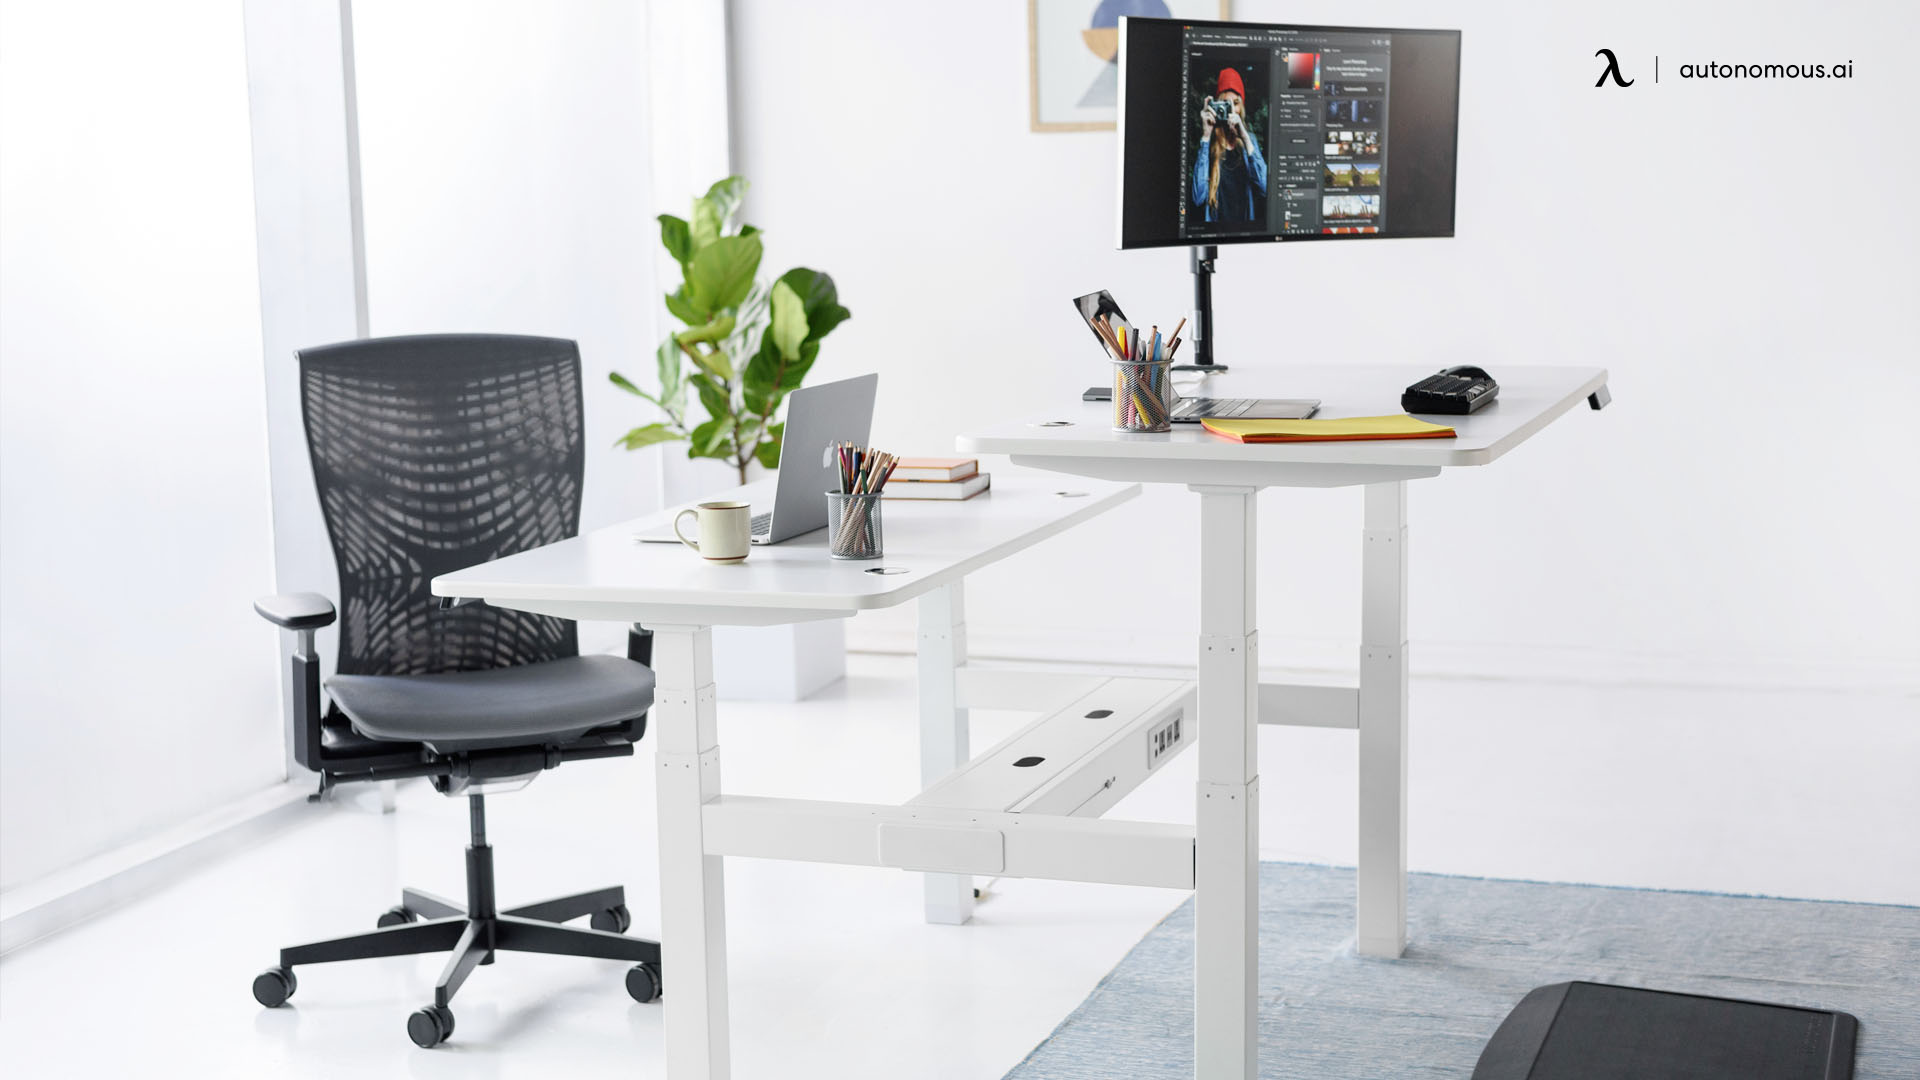 Double Desk - Standing Desk for Coworkers